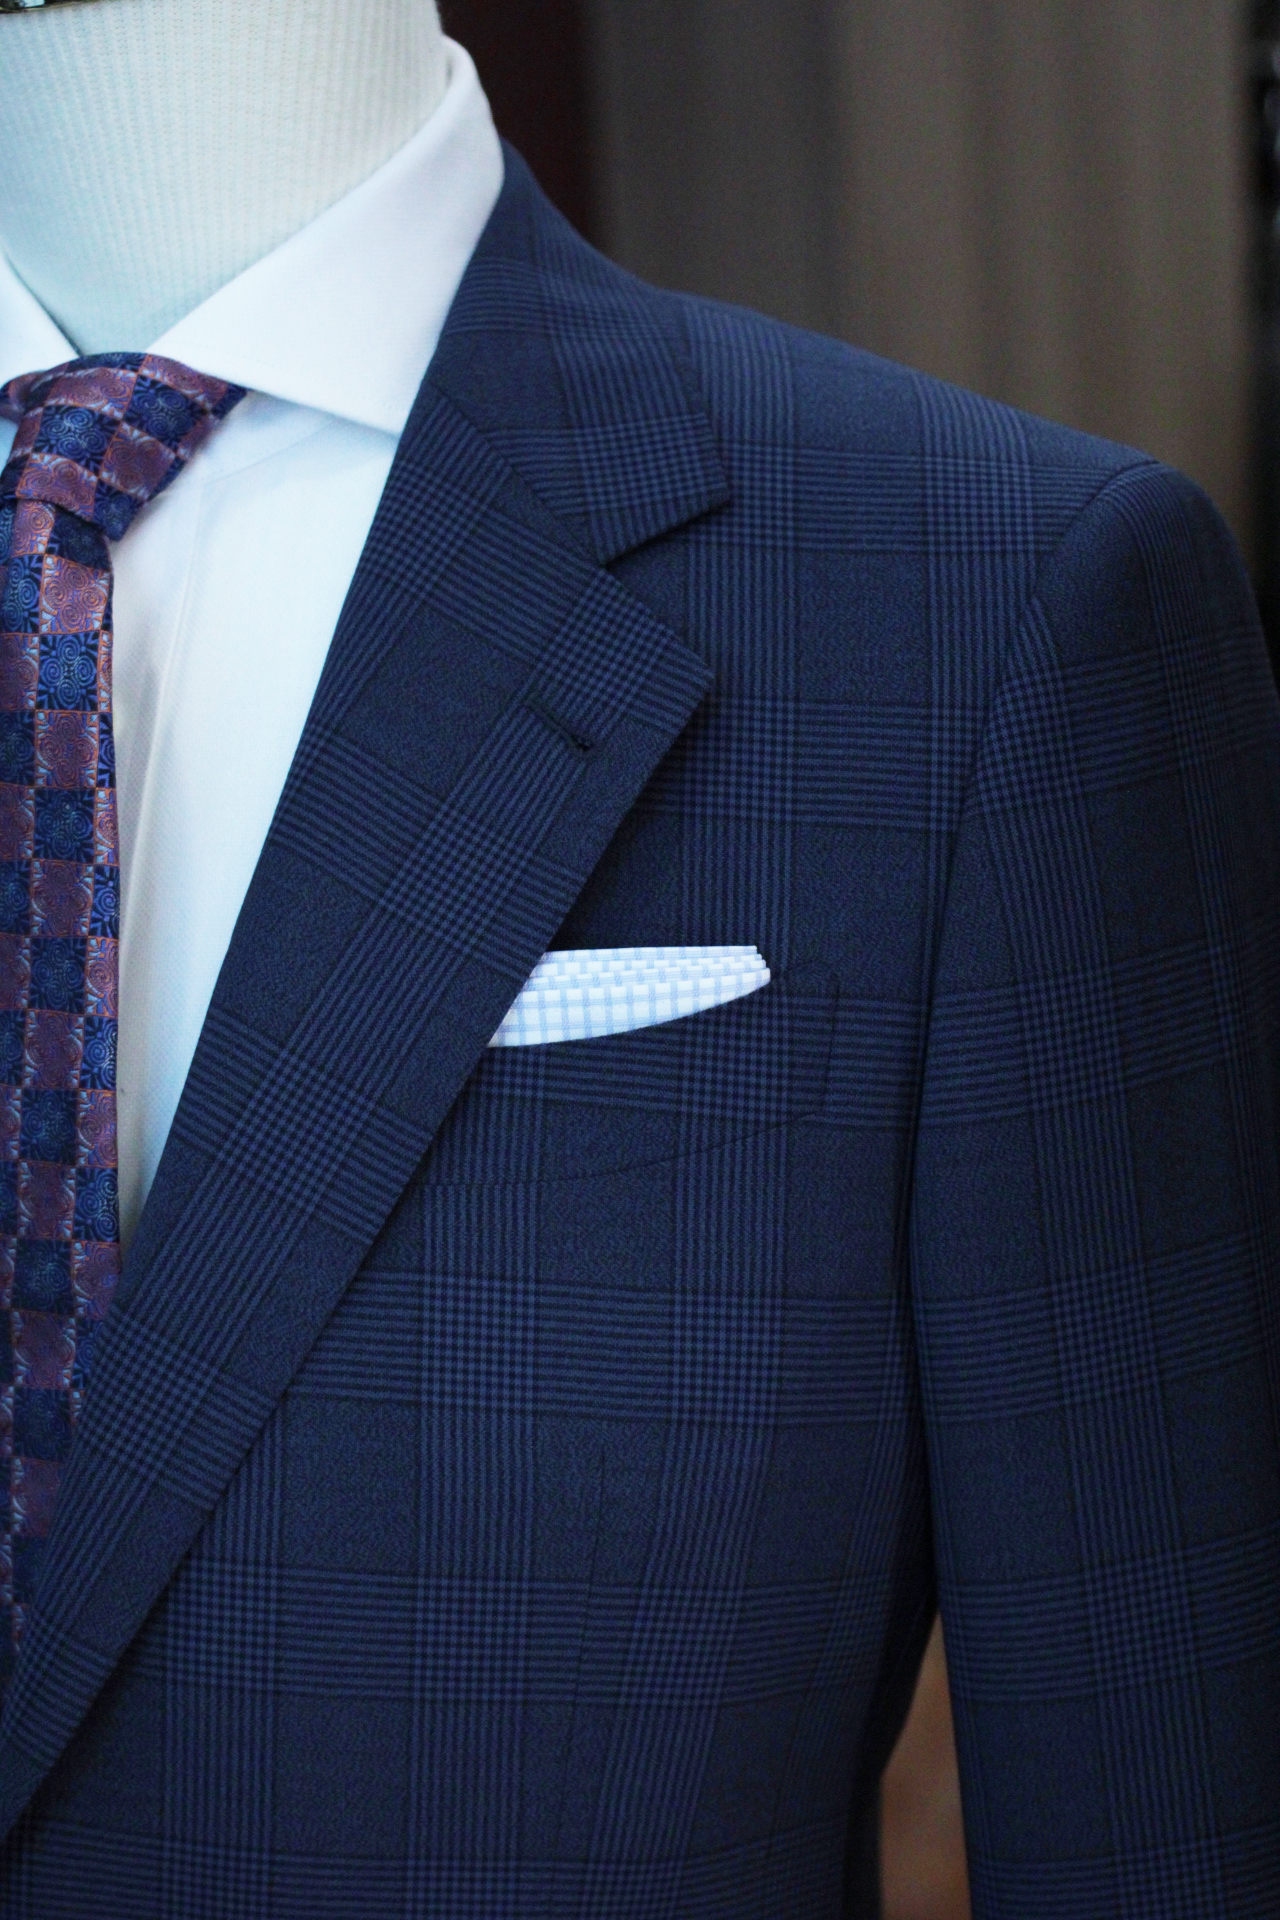 Notched Lapel with barchetta pocket